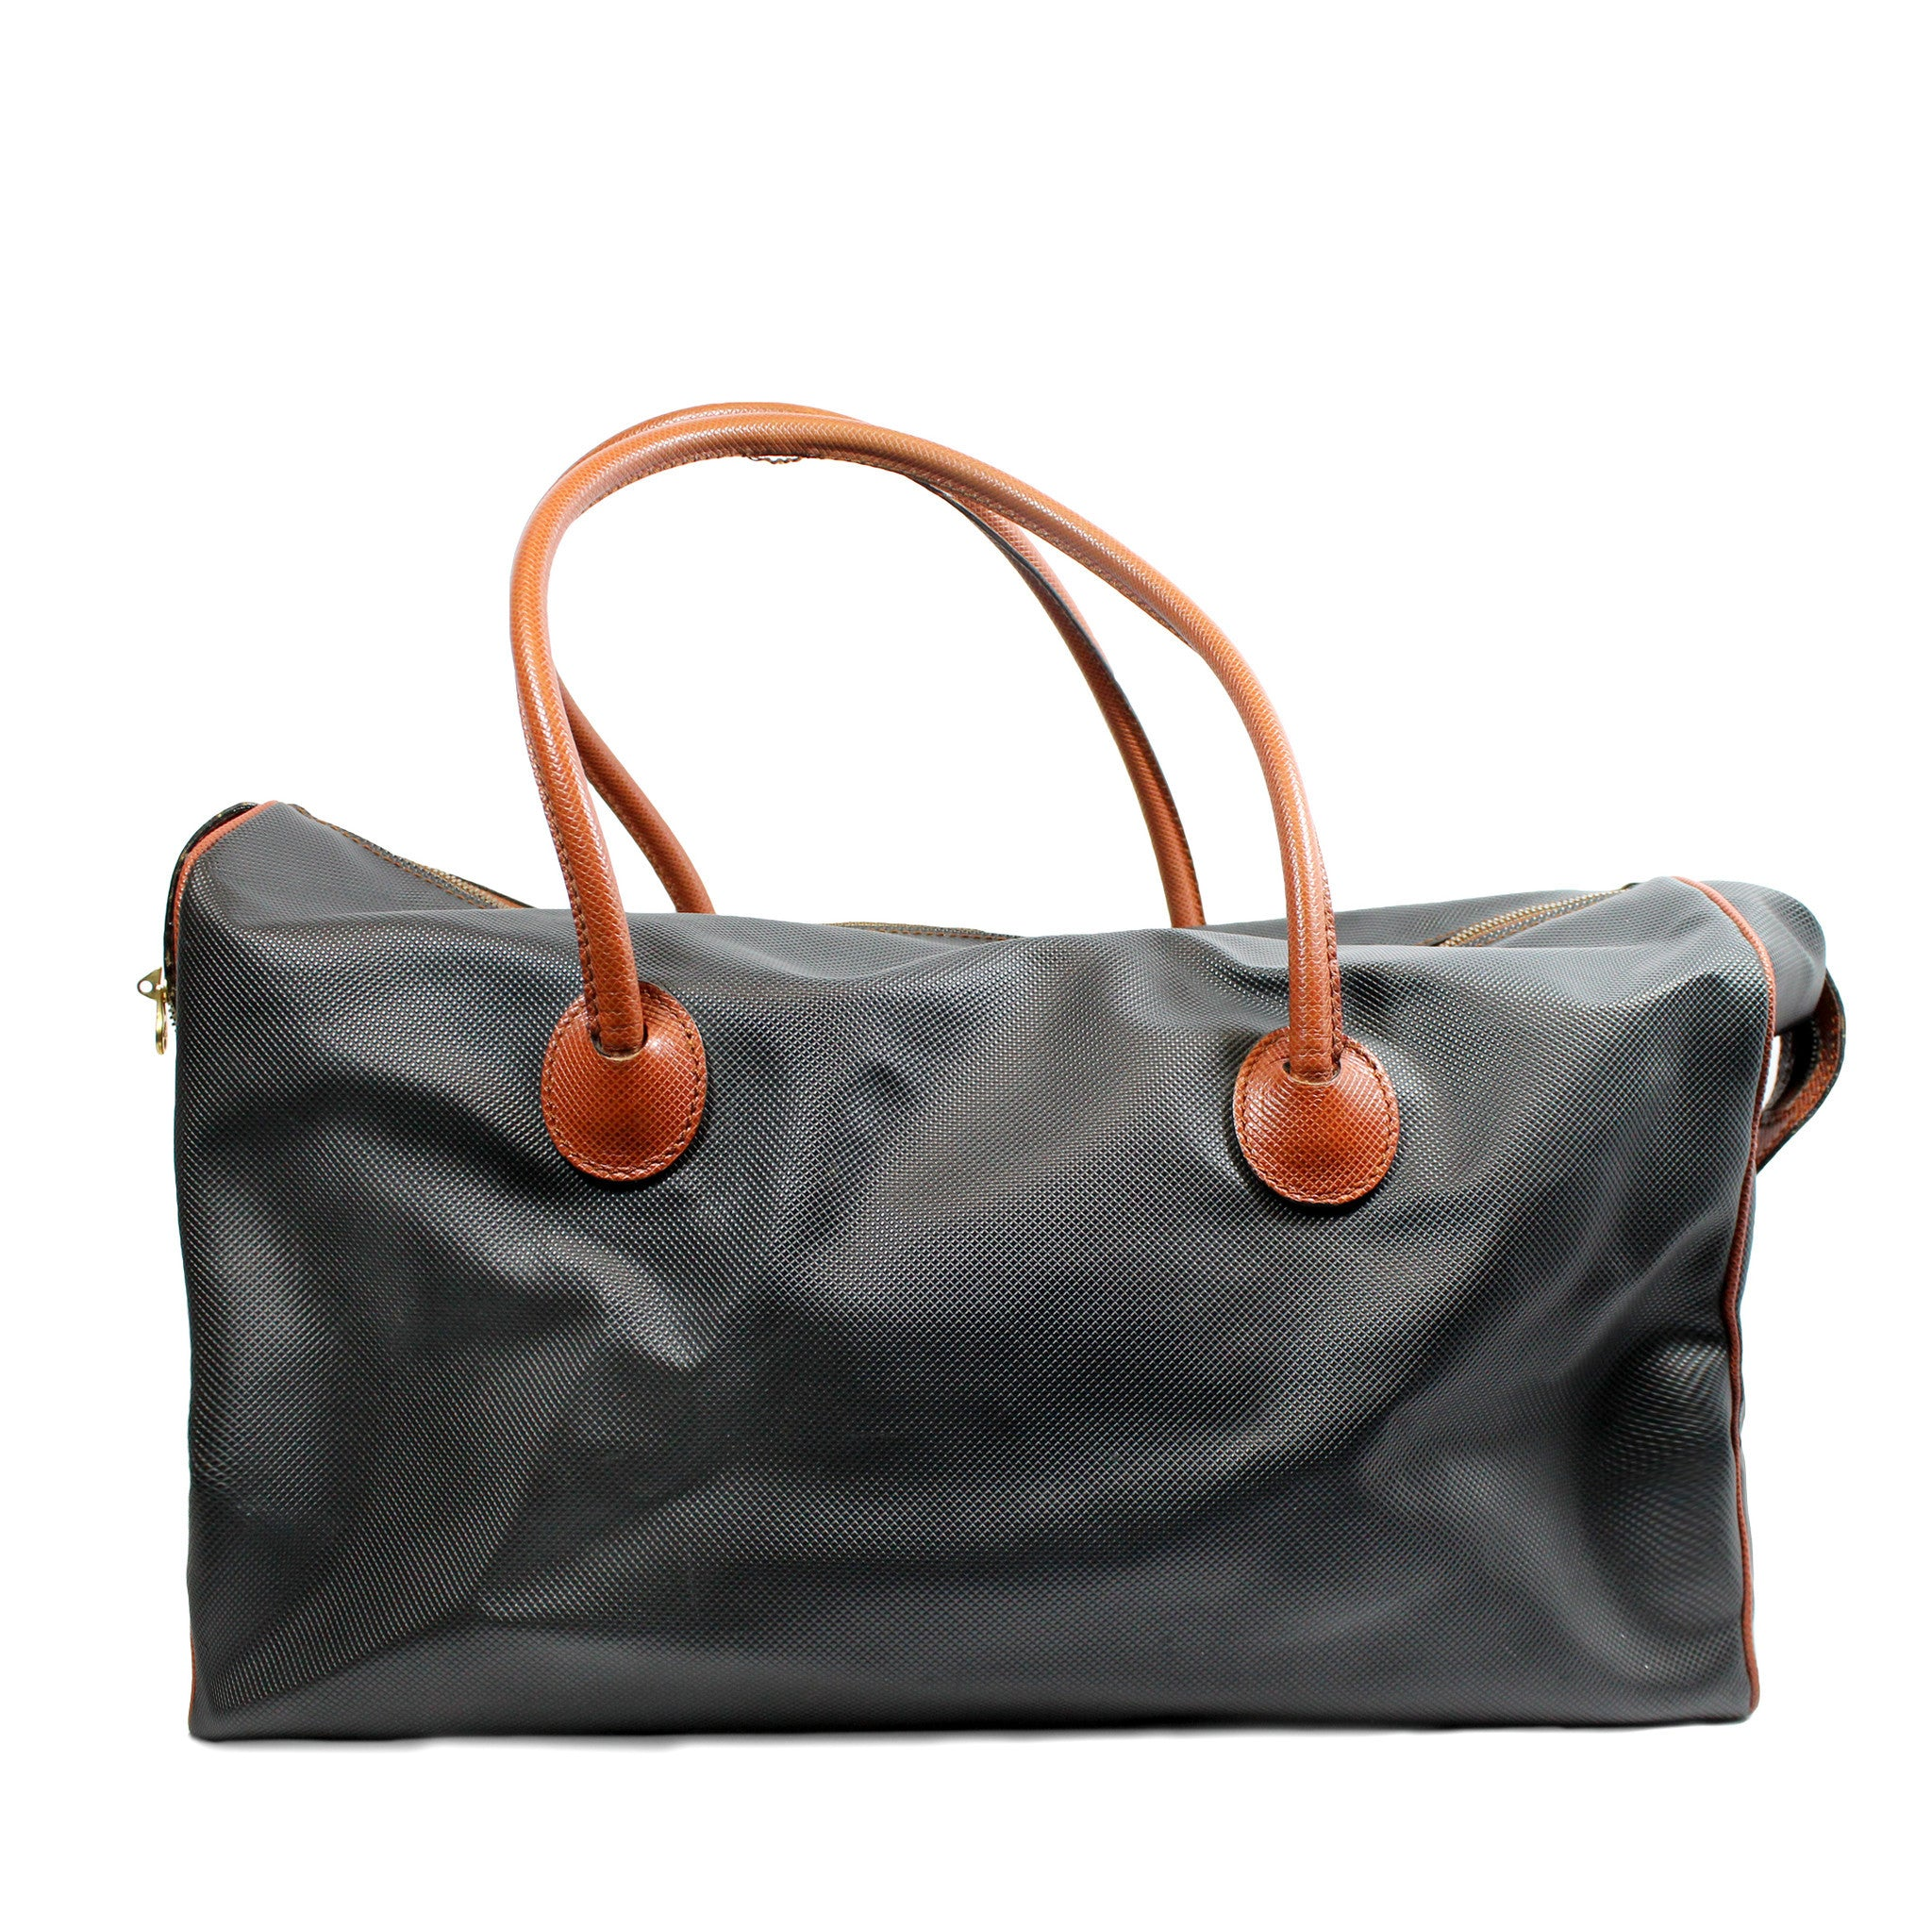 Bottega Veneta Black and Copper Leather Duffle Bag - Encore Consignment - 1